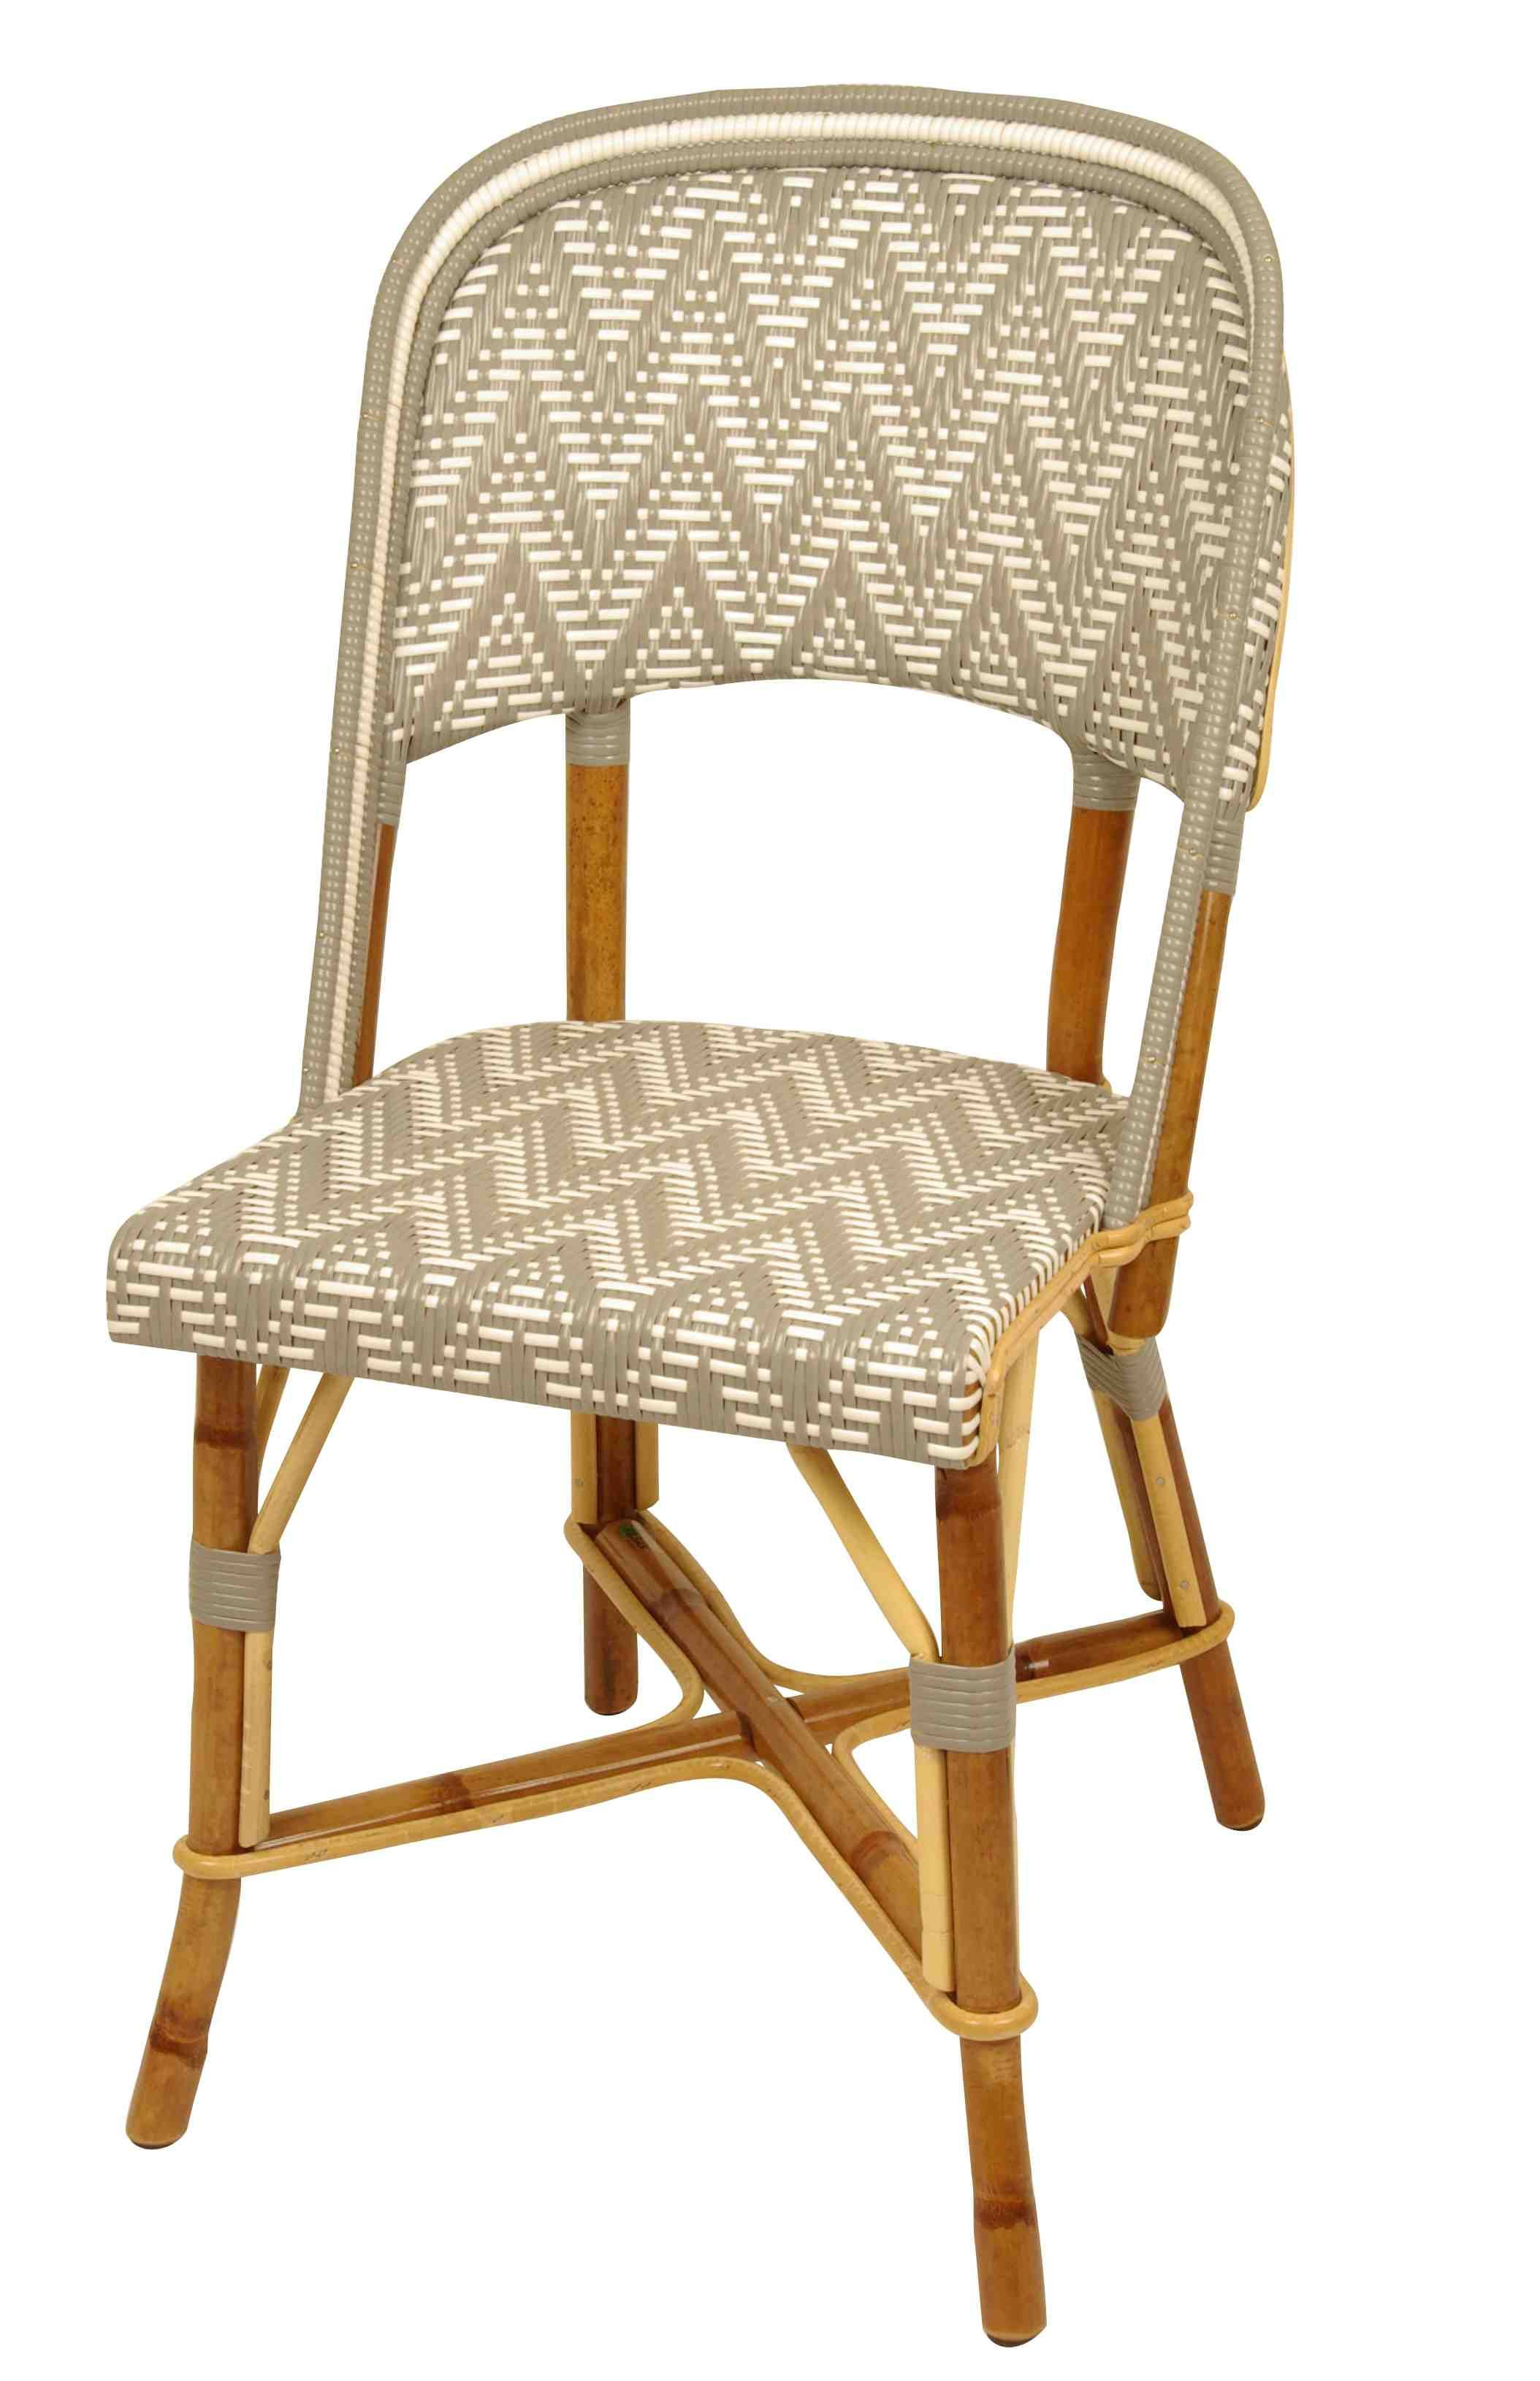 Charmant Chaise SEINE French Bistro Chair From Drucker Collection Tradition. Woven  Dining Chairs, Woven Chair